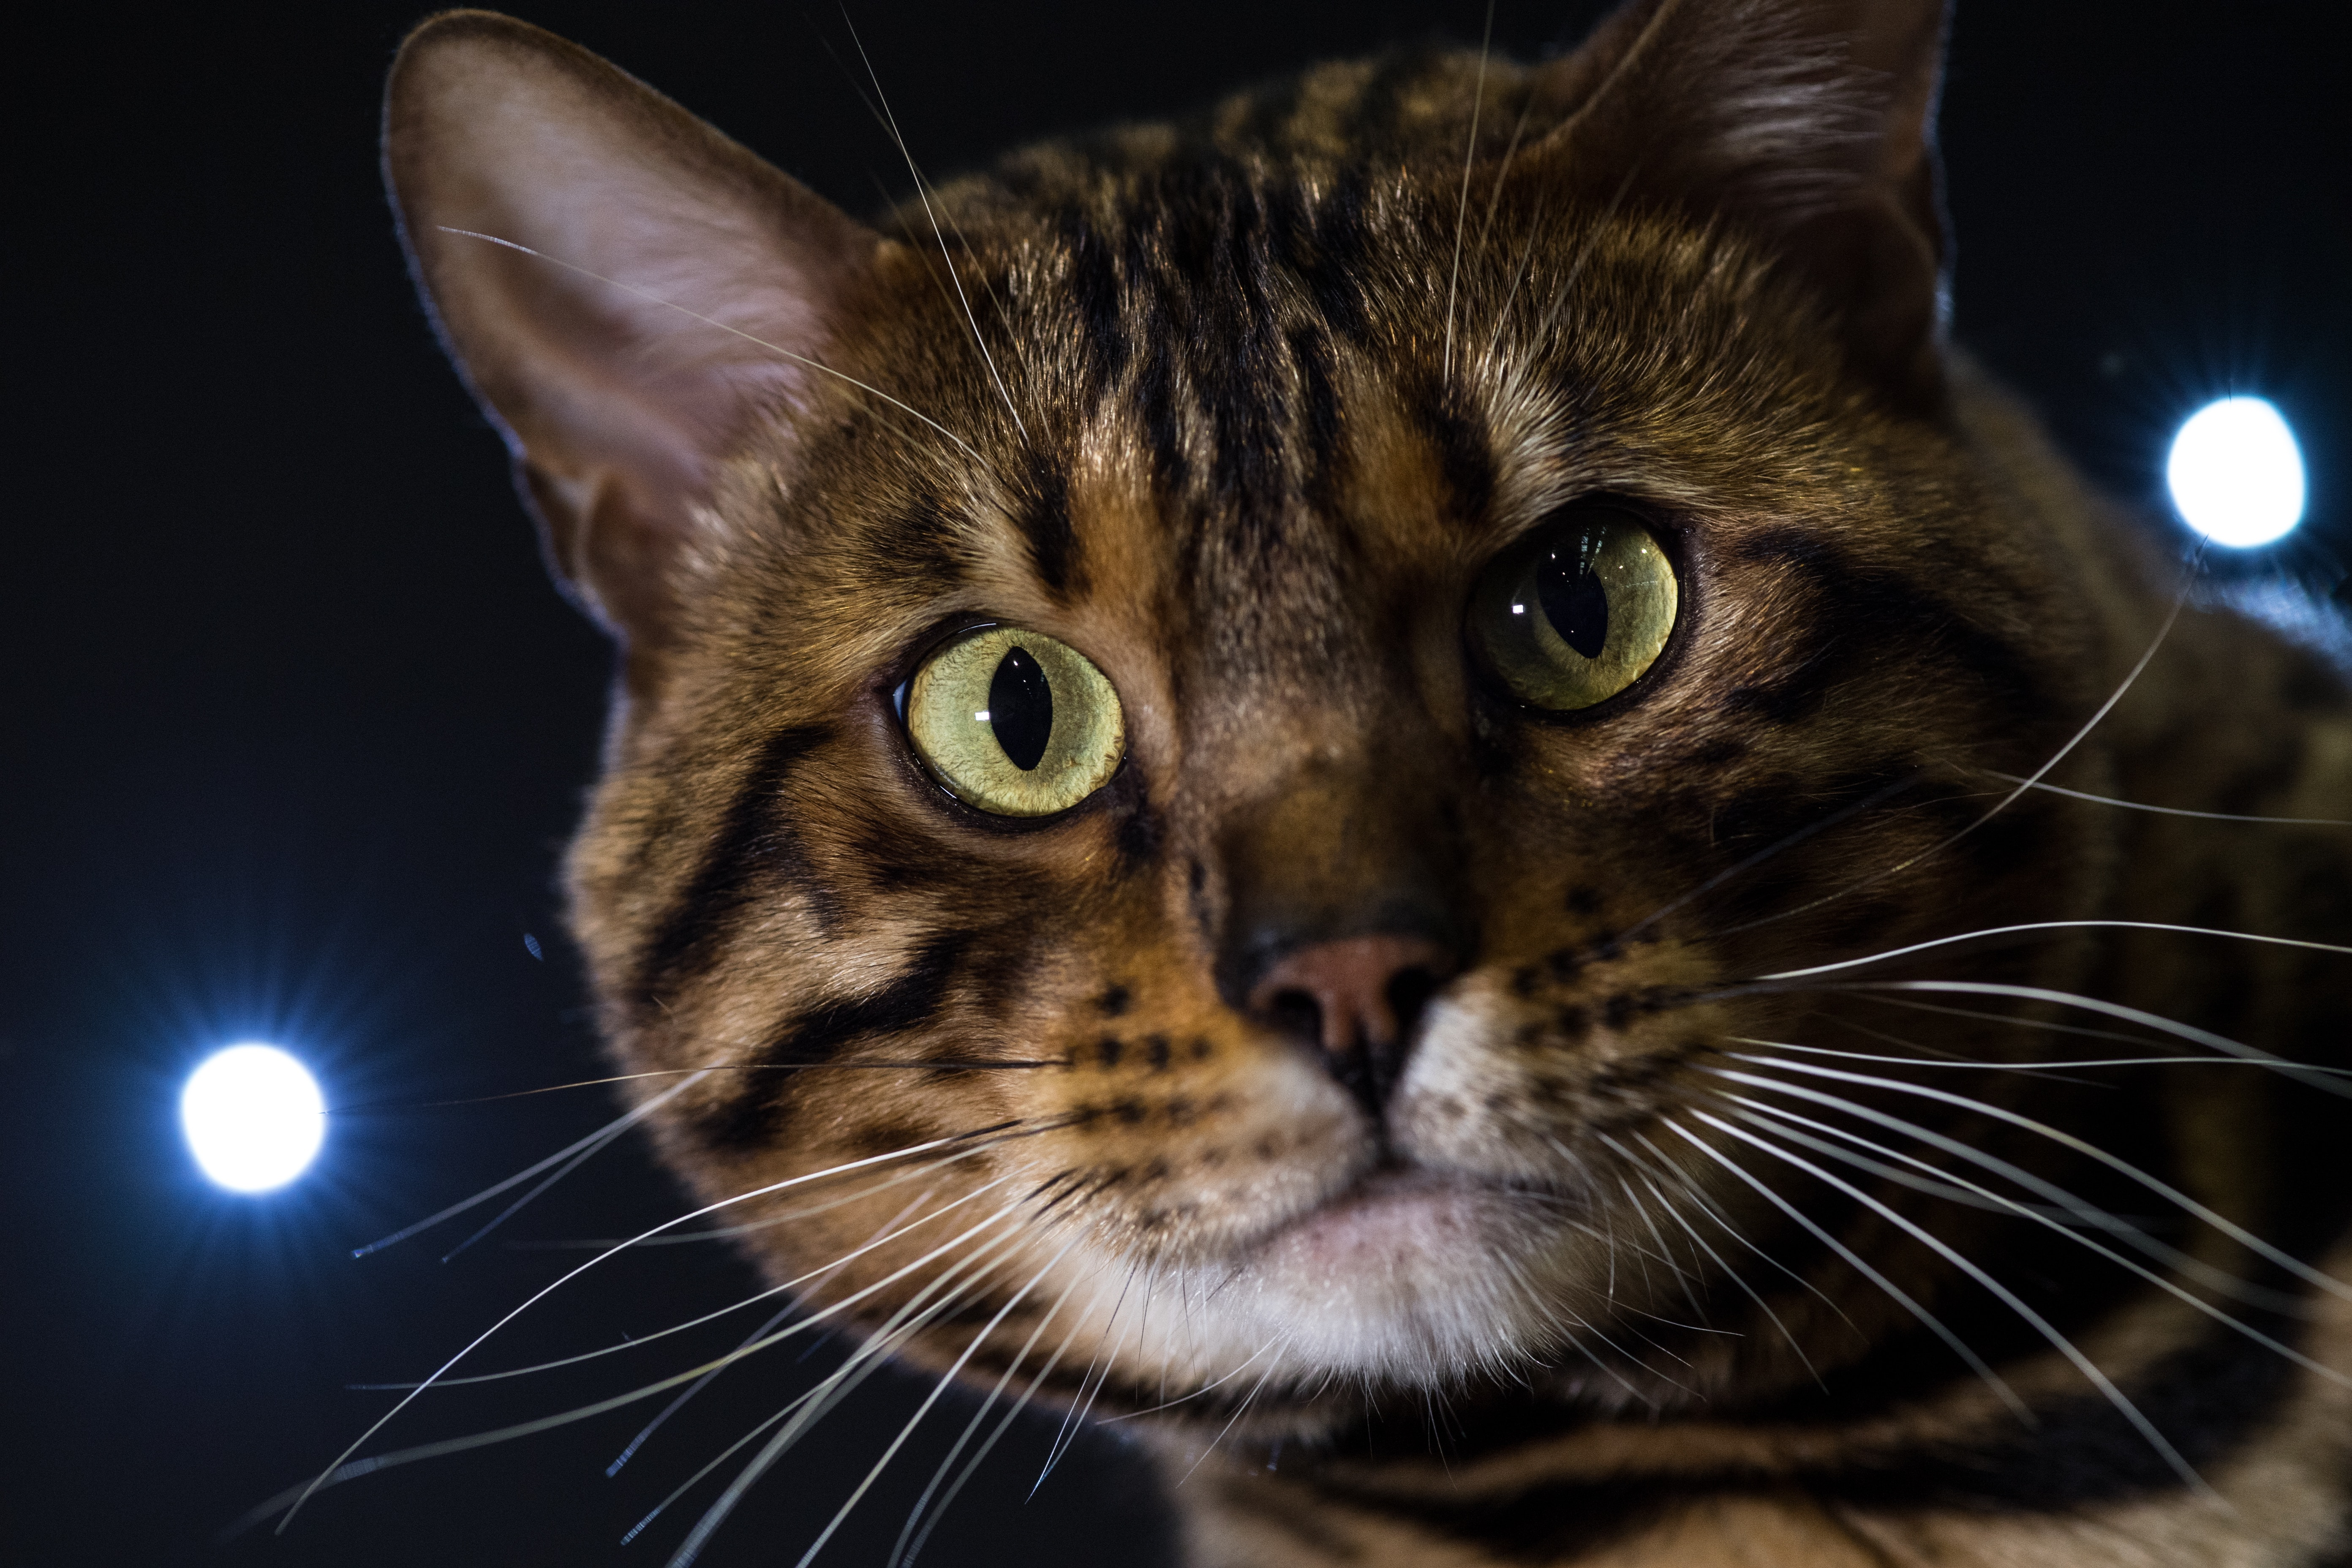 7 Things That Are Toxic To Cats That You Probably Have At